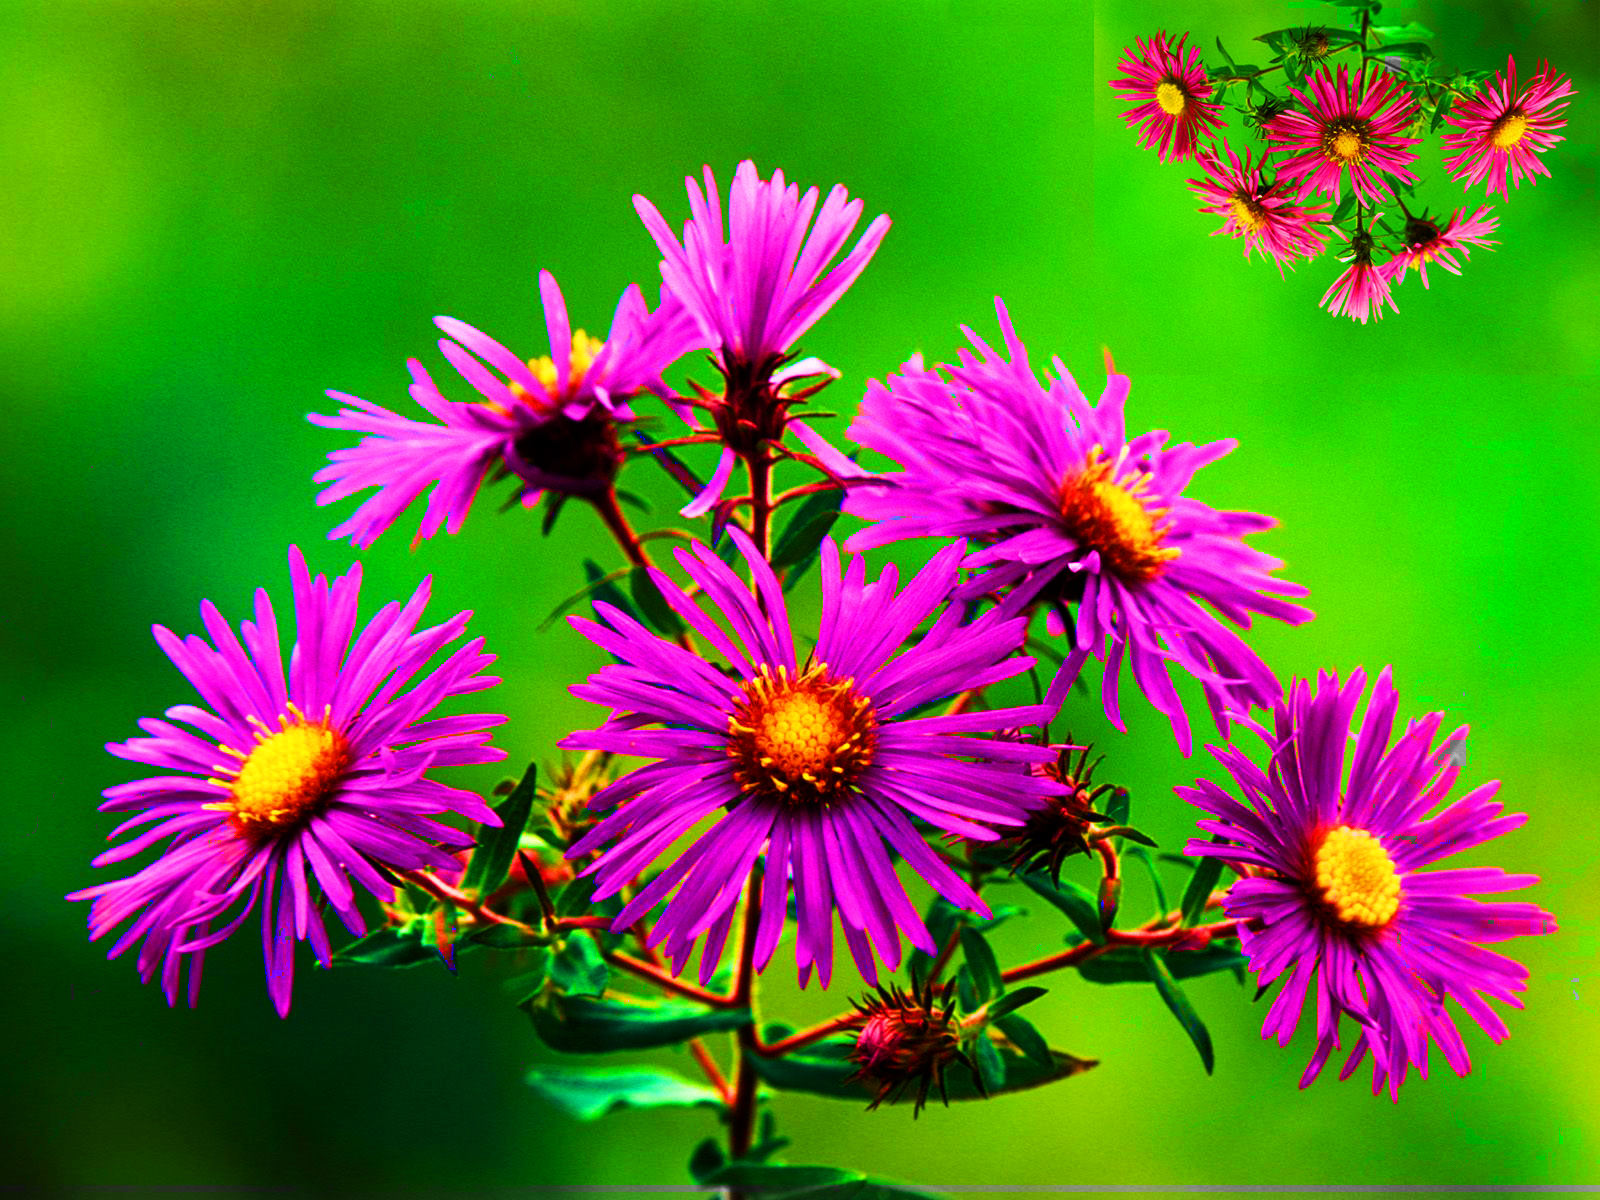 Asters Wallpapers High Quality Download Free